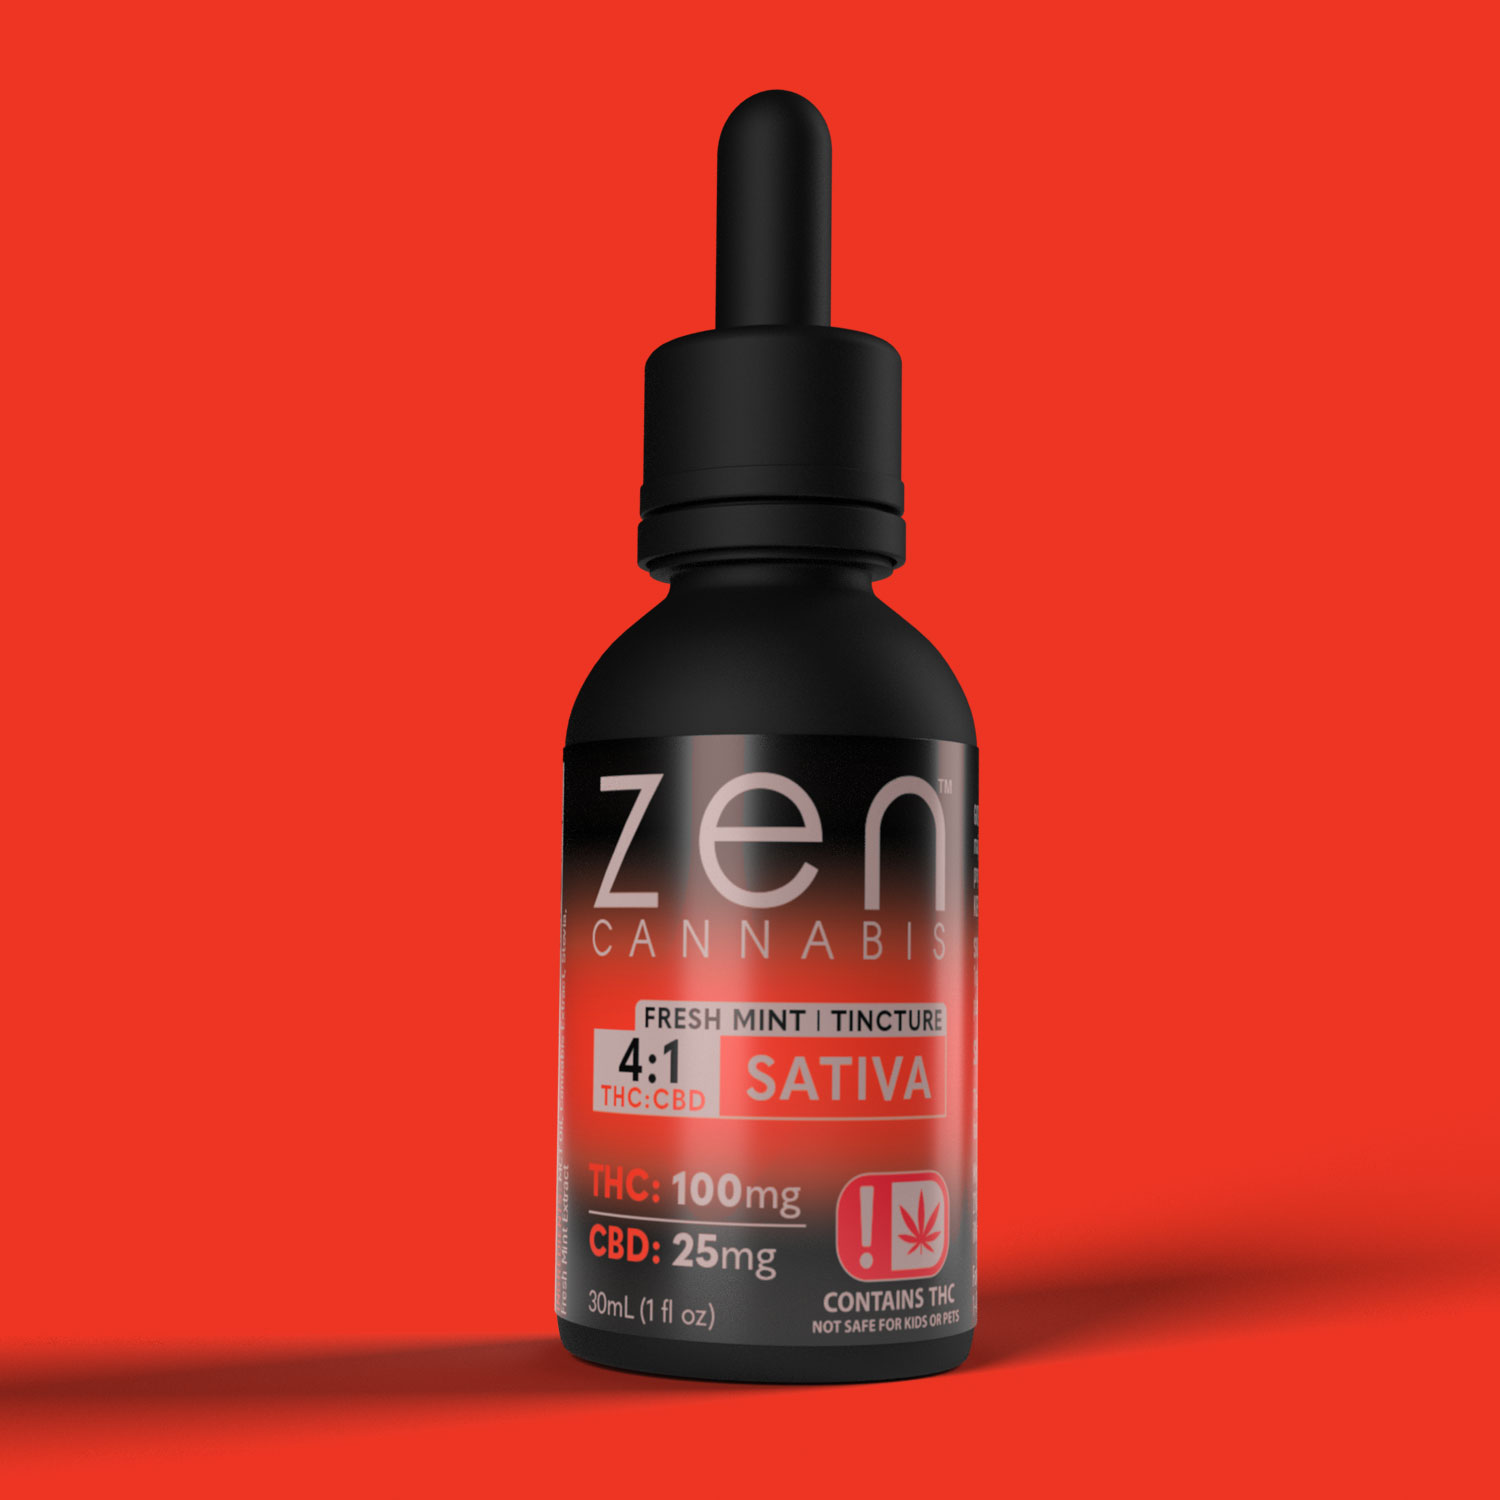 FRESH MINT 100mg THC per bottle 25mg CBD per bottle Bursting with fresh mint flavor, the Zen Cannabis Sativa tincture provides the incredible benefits of both THC, CBD and terpenes to give you an uplifting and rejuvenating experience without dragging you down.  100mg THC   25mg CBD 1oz (30ml)